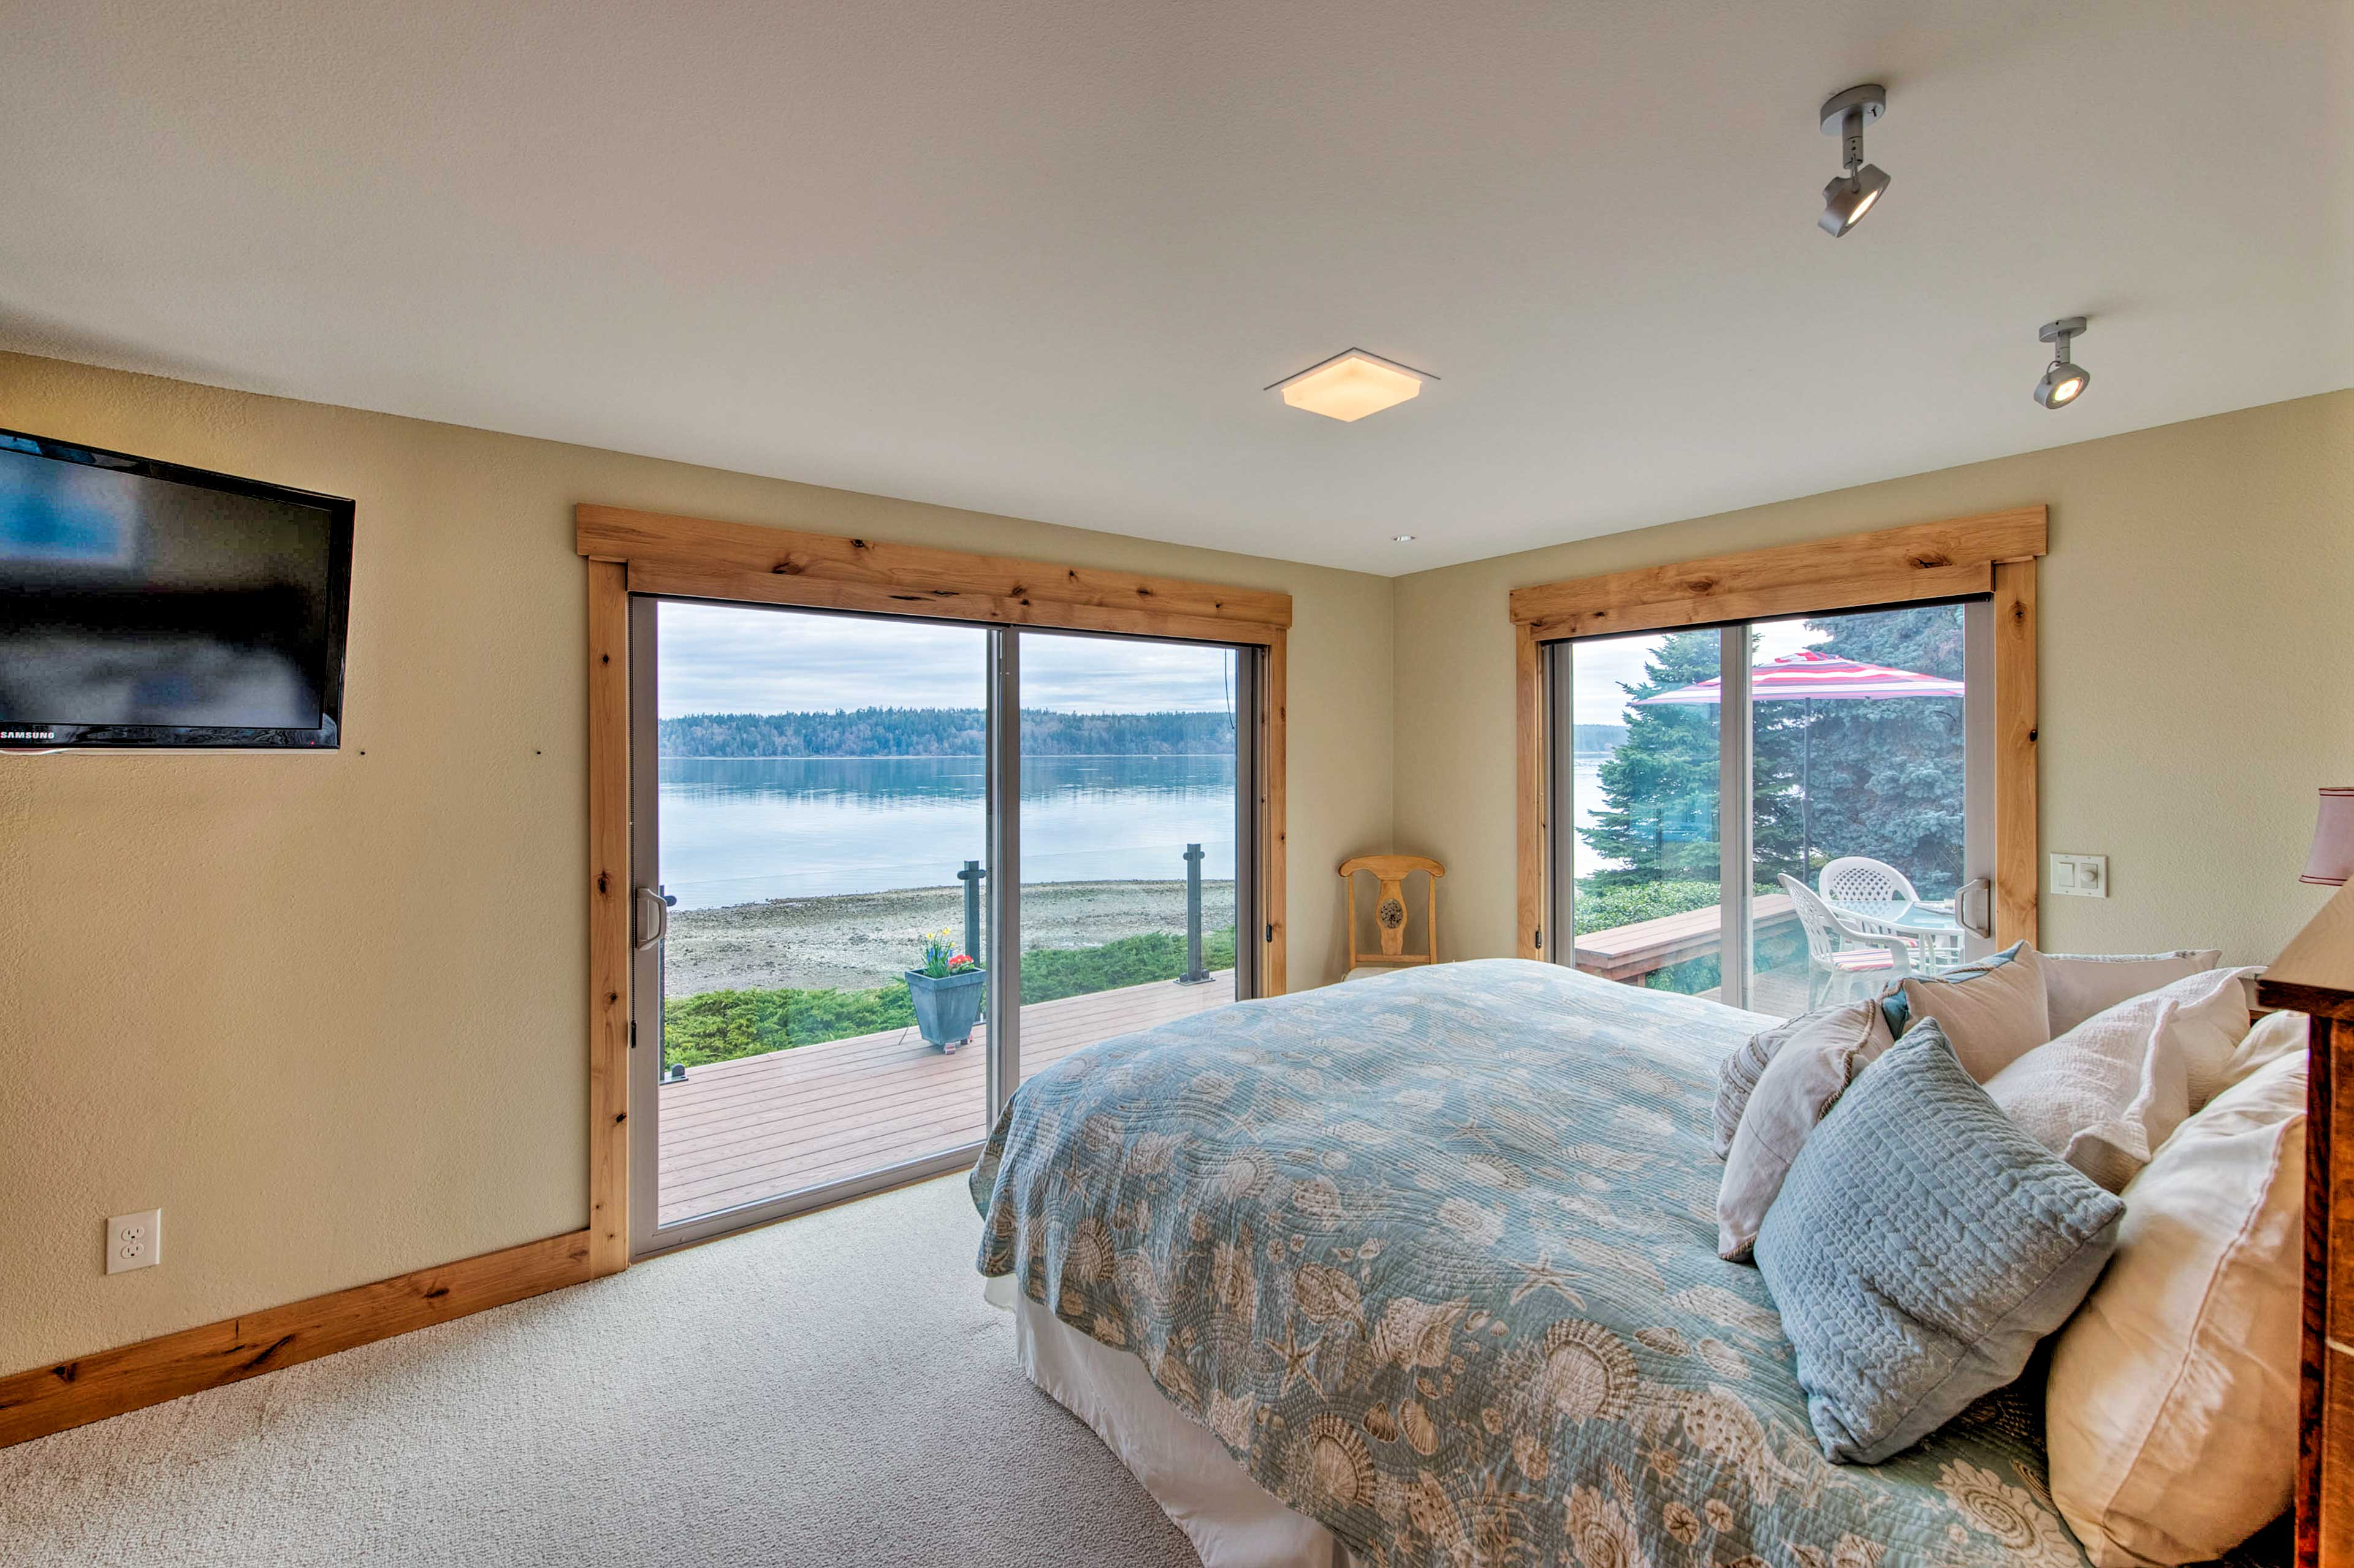 Drift to sleep while watching a show on TV or get lost in the gorgeous views.